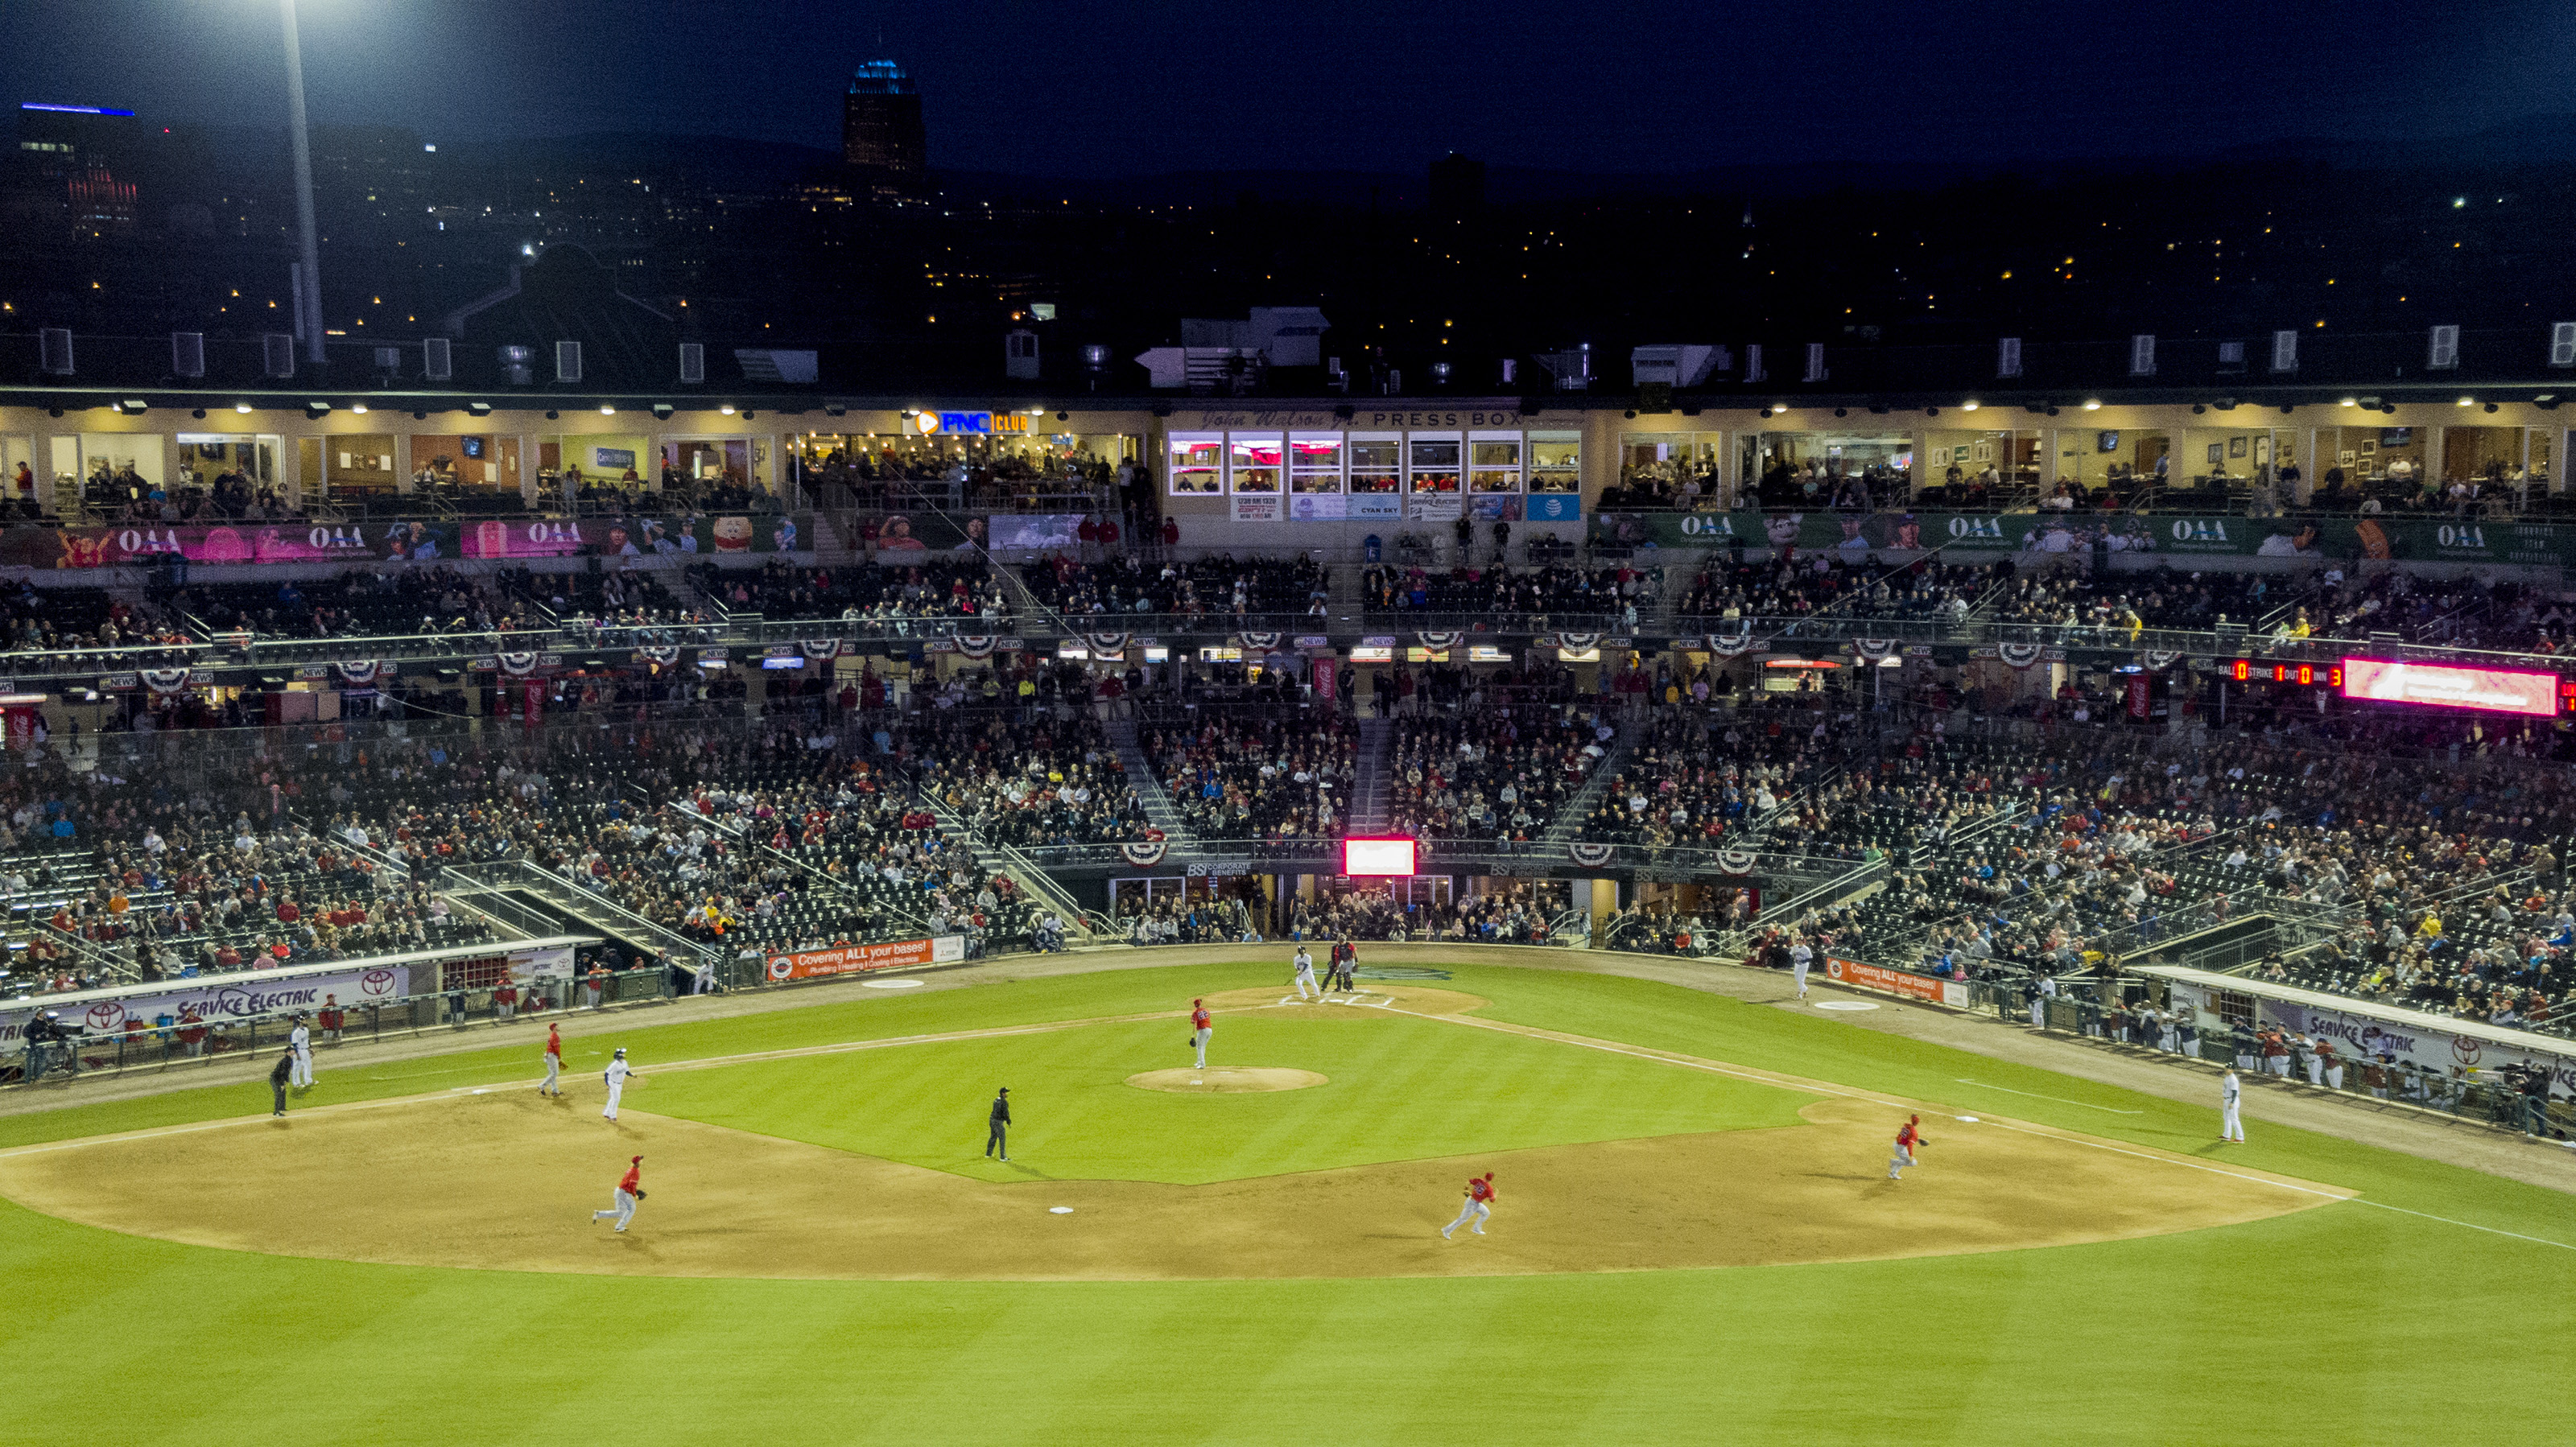 A drone perspective of the action during the Lehigh Valley IronPigs home opener April 12. Photo courtesy of Lehigh Valley Drone.